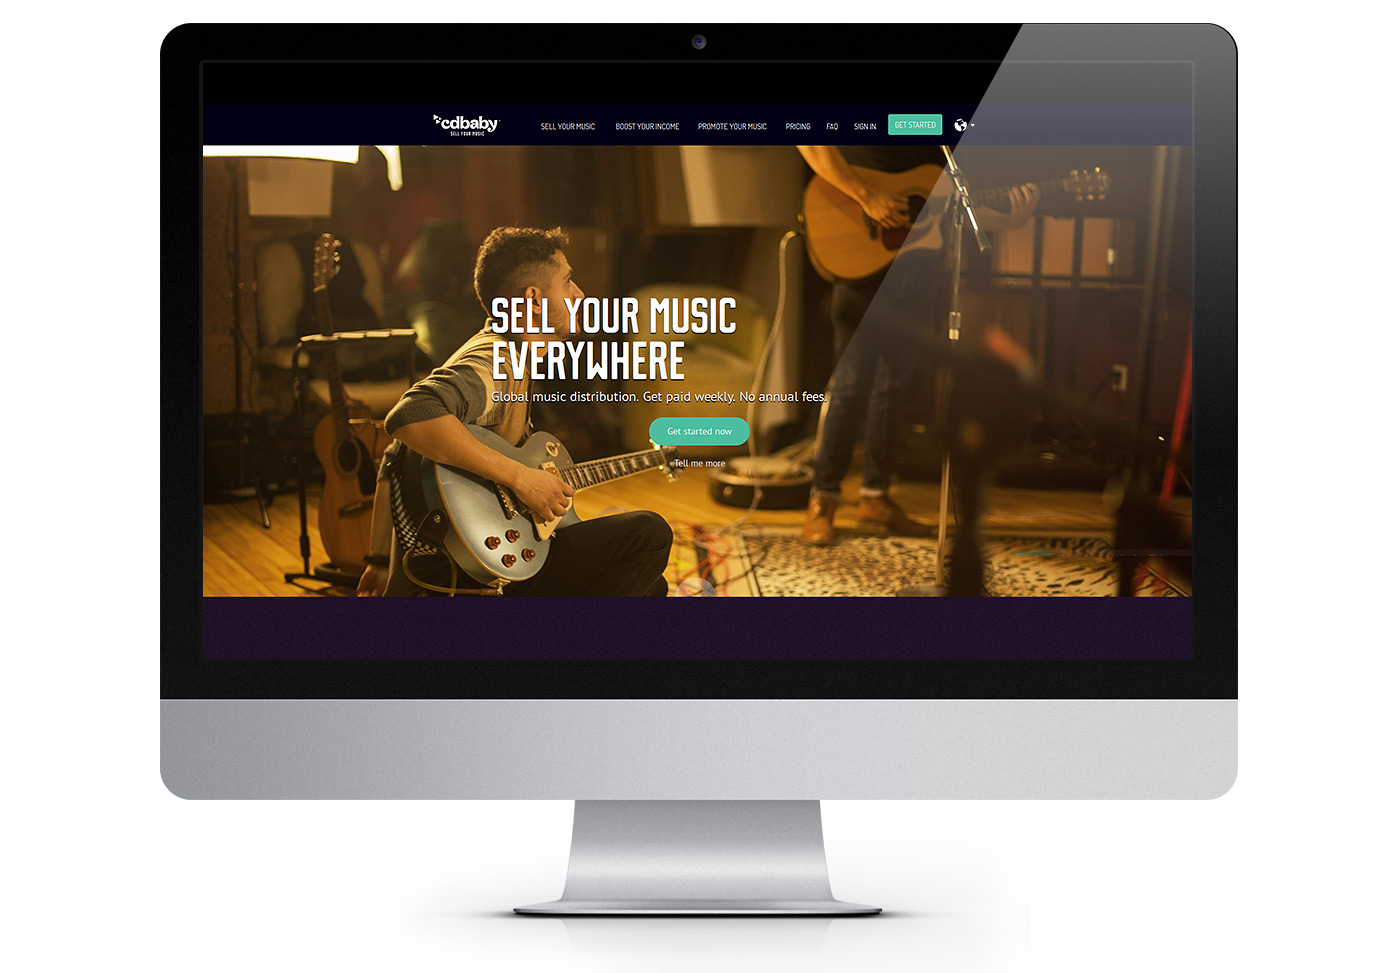 market music with cdbaby